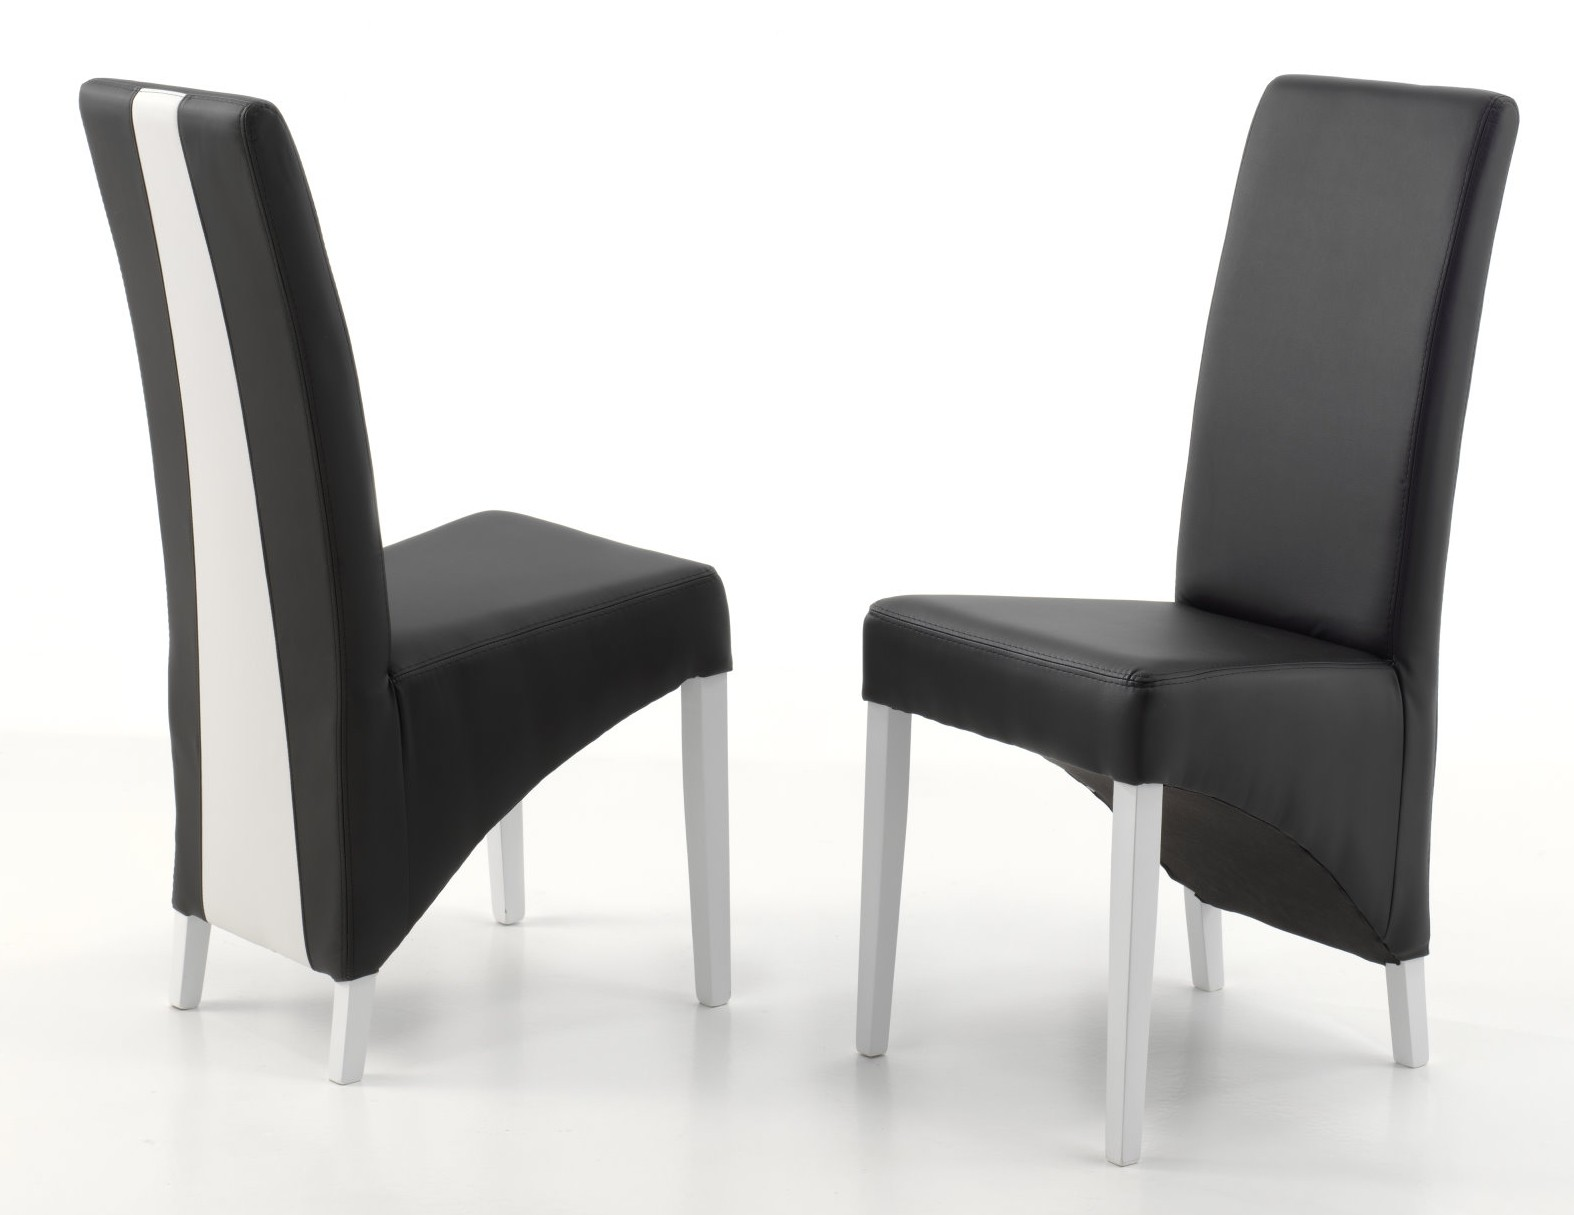 chaises salle a manger desing indro